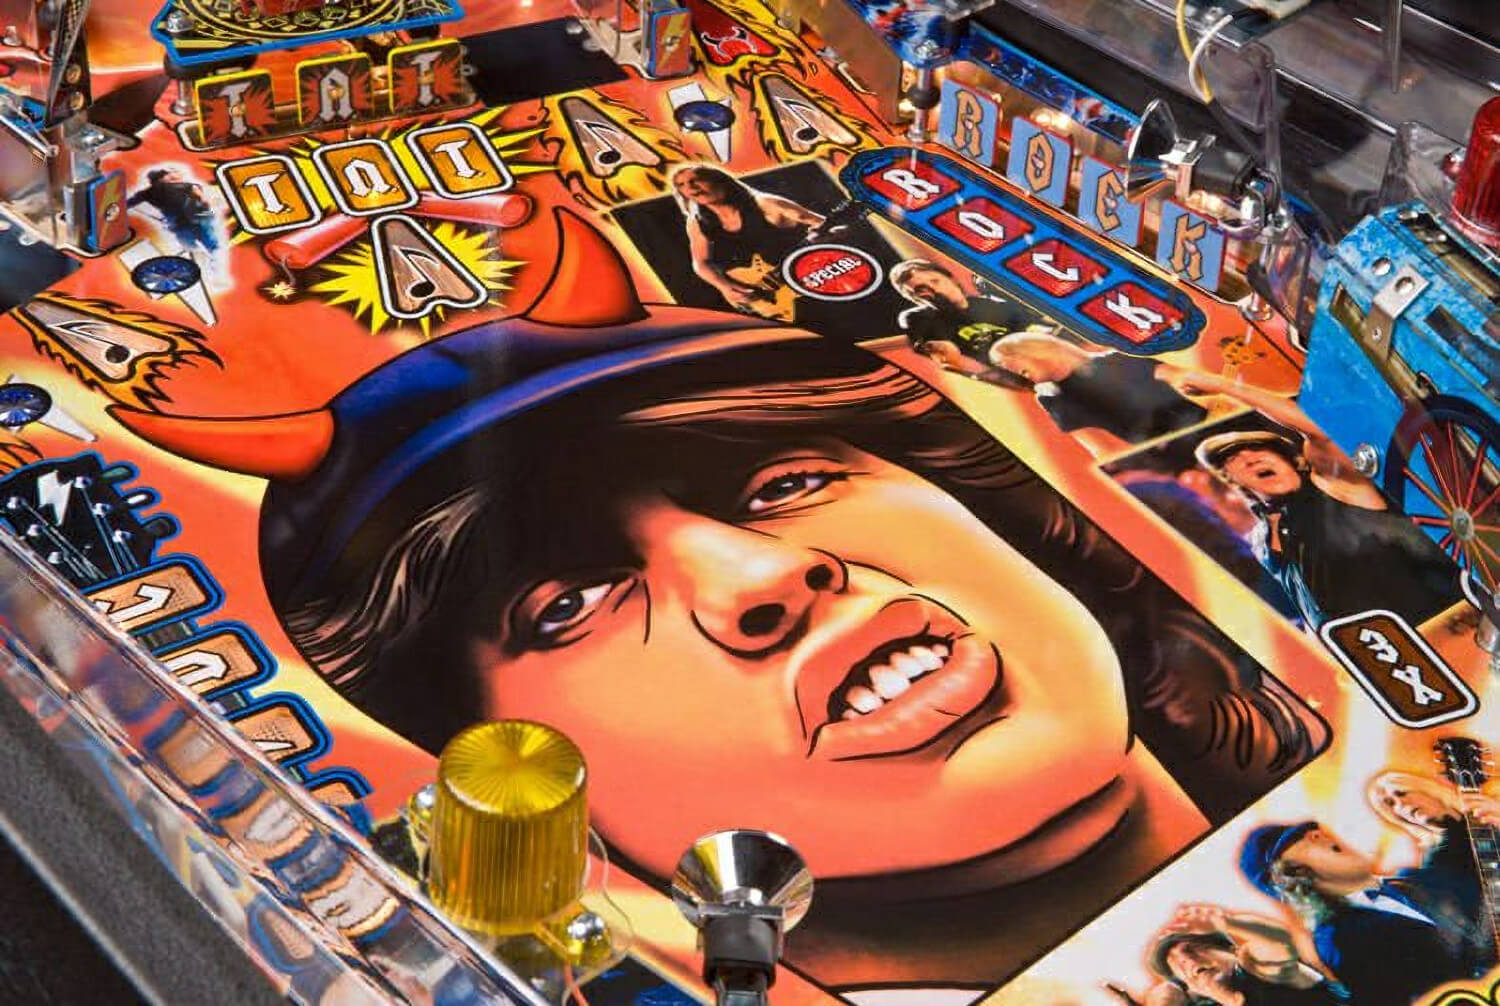 Neon Signs For Sale >> AC / DC Pinball Table | Liberty Games